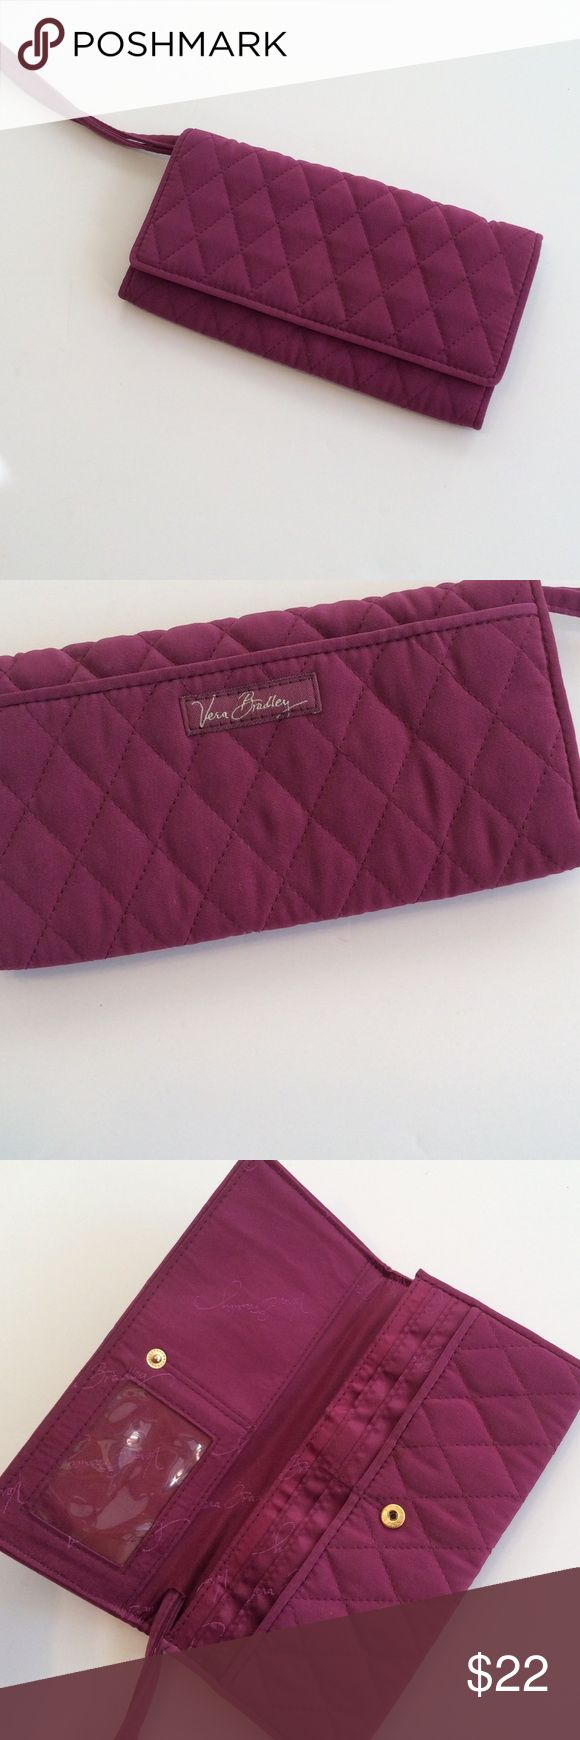 Selling this Vera Bradley quilted purple microfiber wristlet in my Poshmark closet! My username is: sunandpearl. #shopmycloset #poshmark #fashion #shopping #style #forsale #Vera Bradley #Handbags